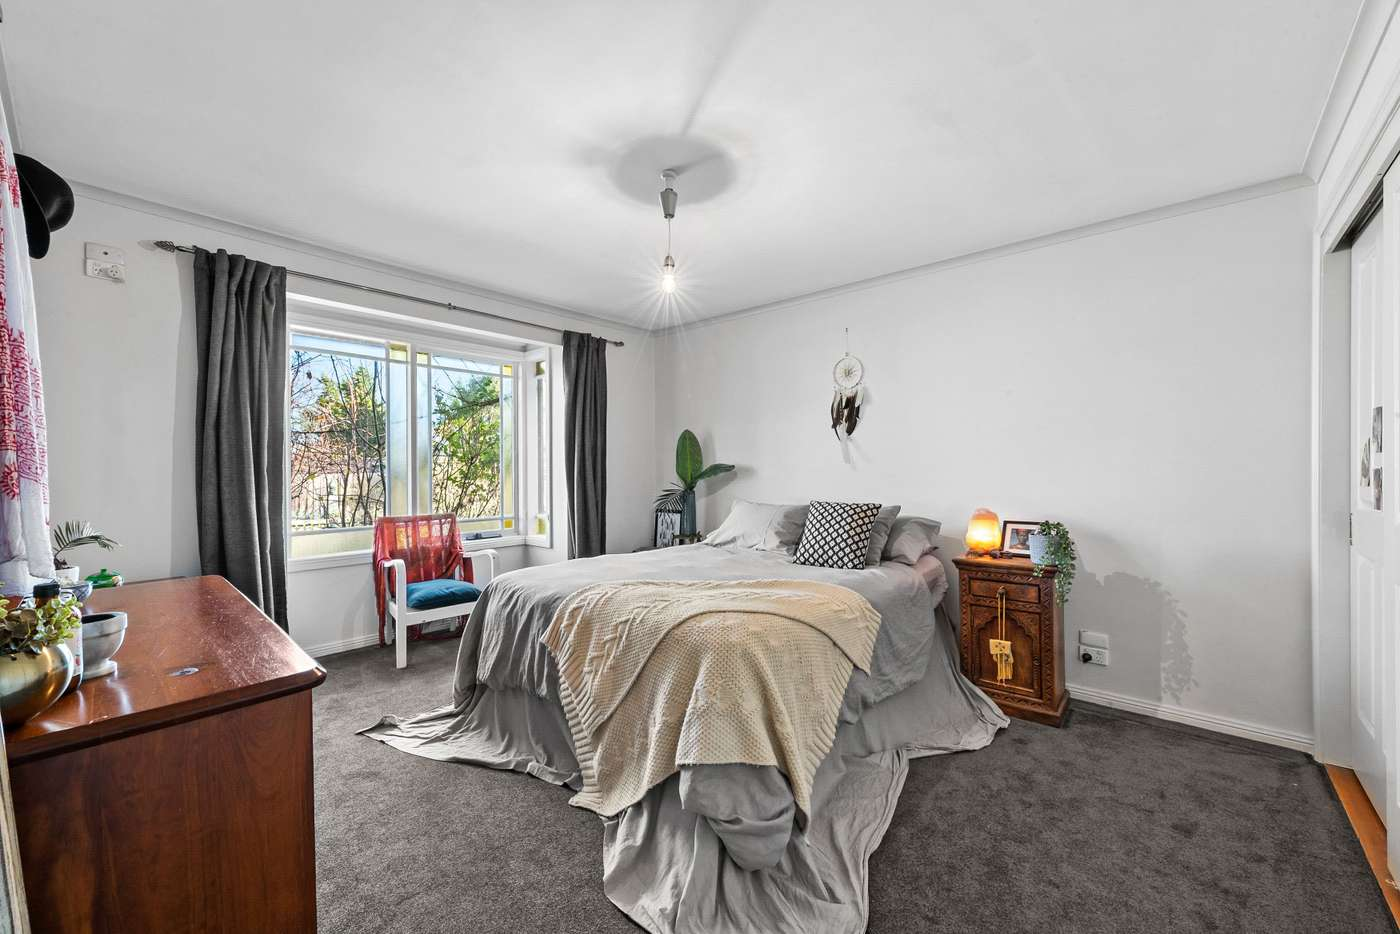 Fifth view of Homely house listing, 23 Barley Court, Delahey VIC 3037